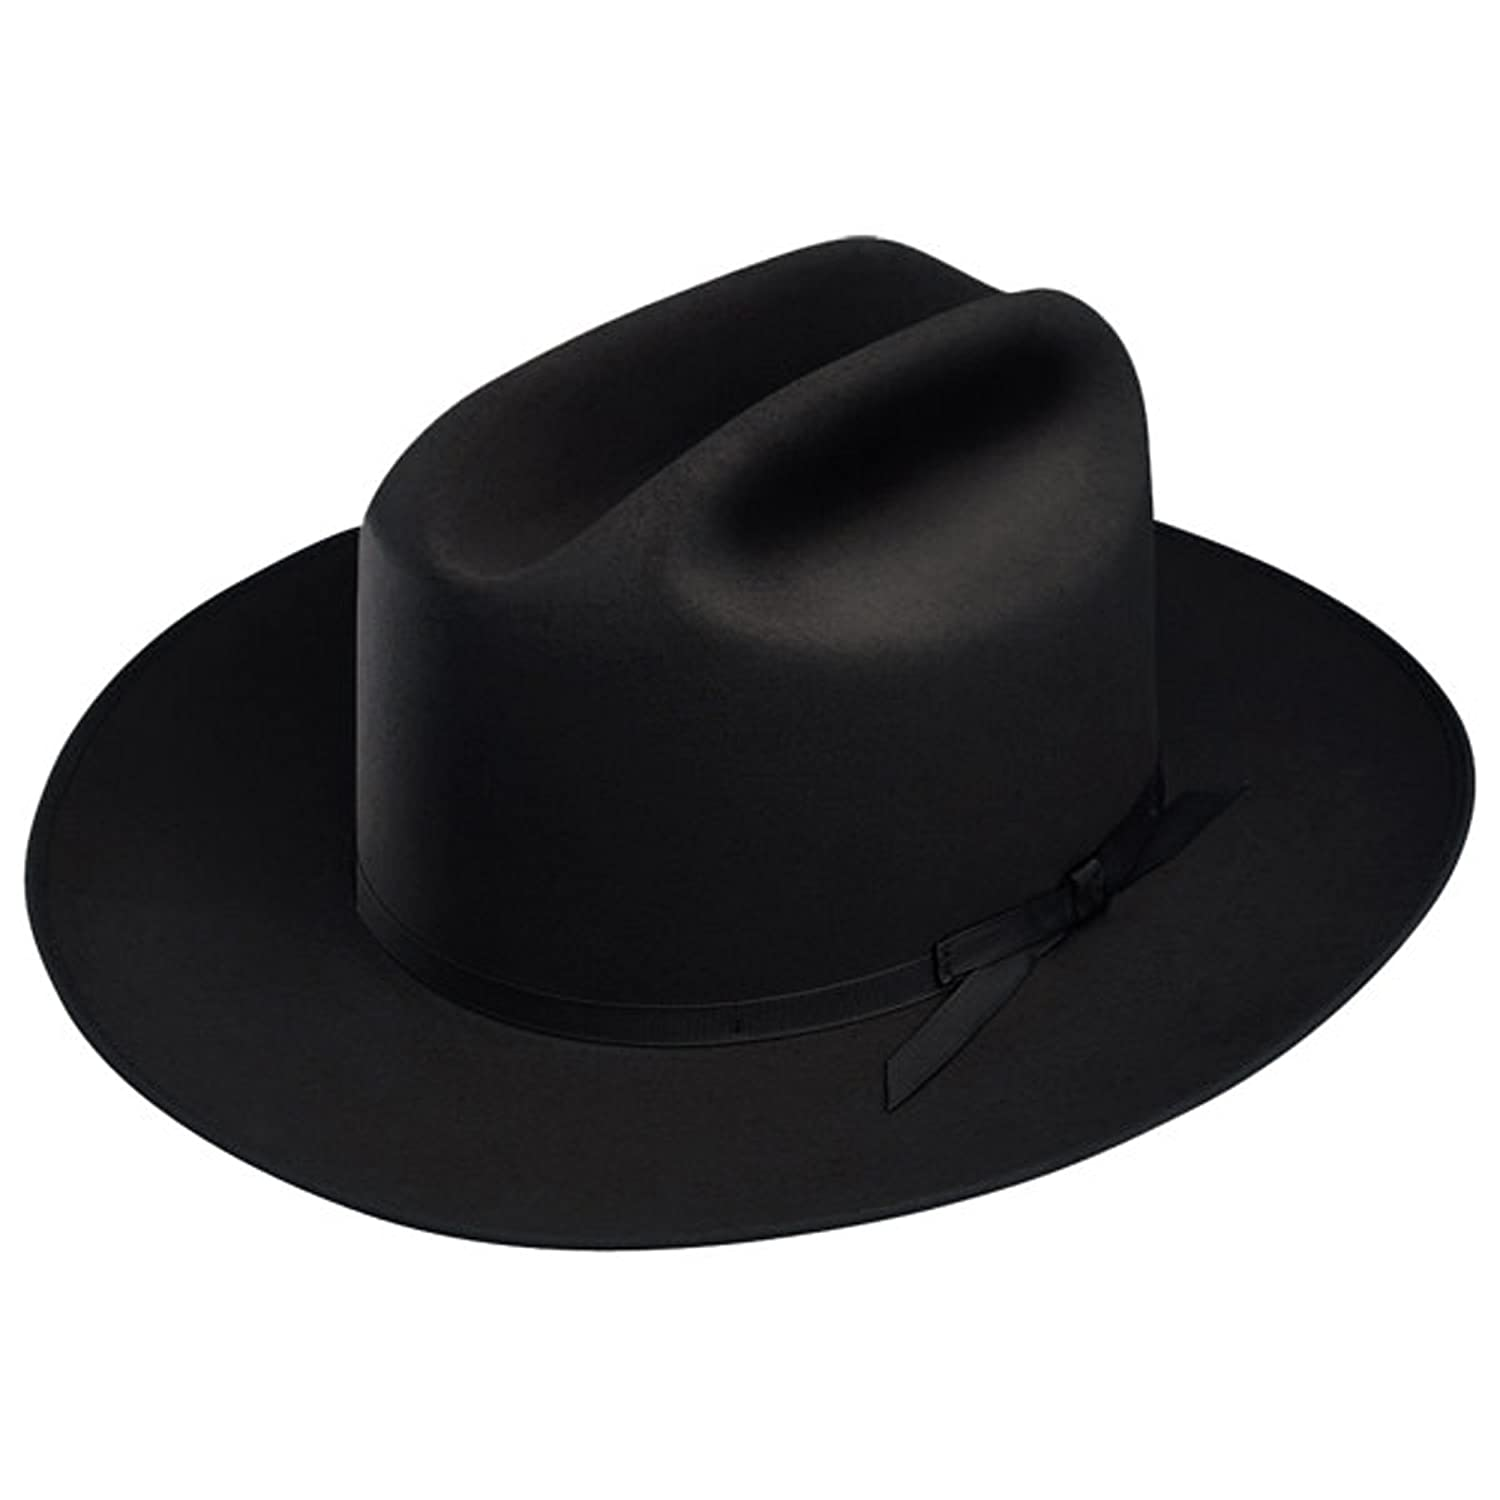 0da5752354d62 Stetson Men s 6X Open Road Fur Felt Cowboy Hat - Sfoprd-052661 Silver  Belly  Amazon.ca  Clothing   Accessories